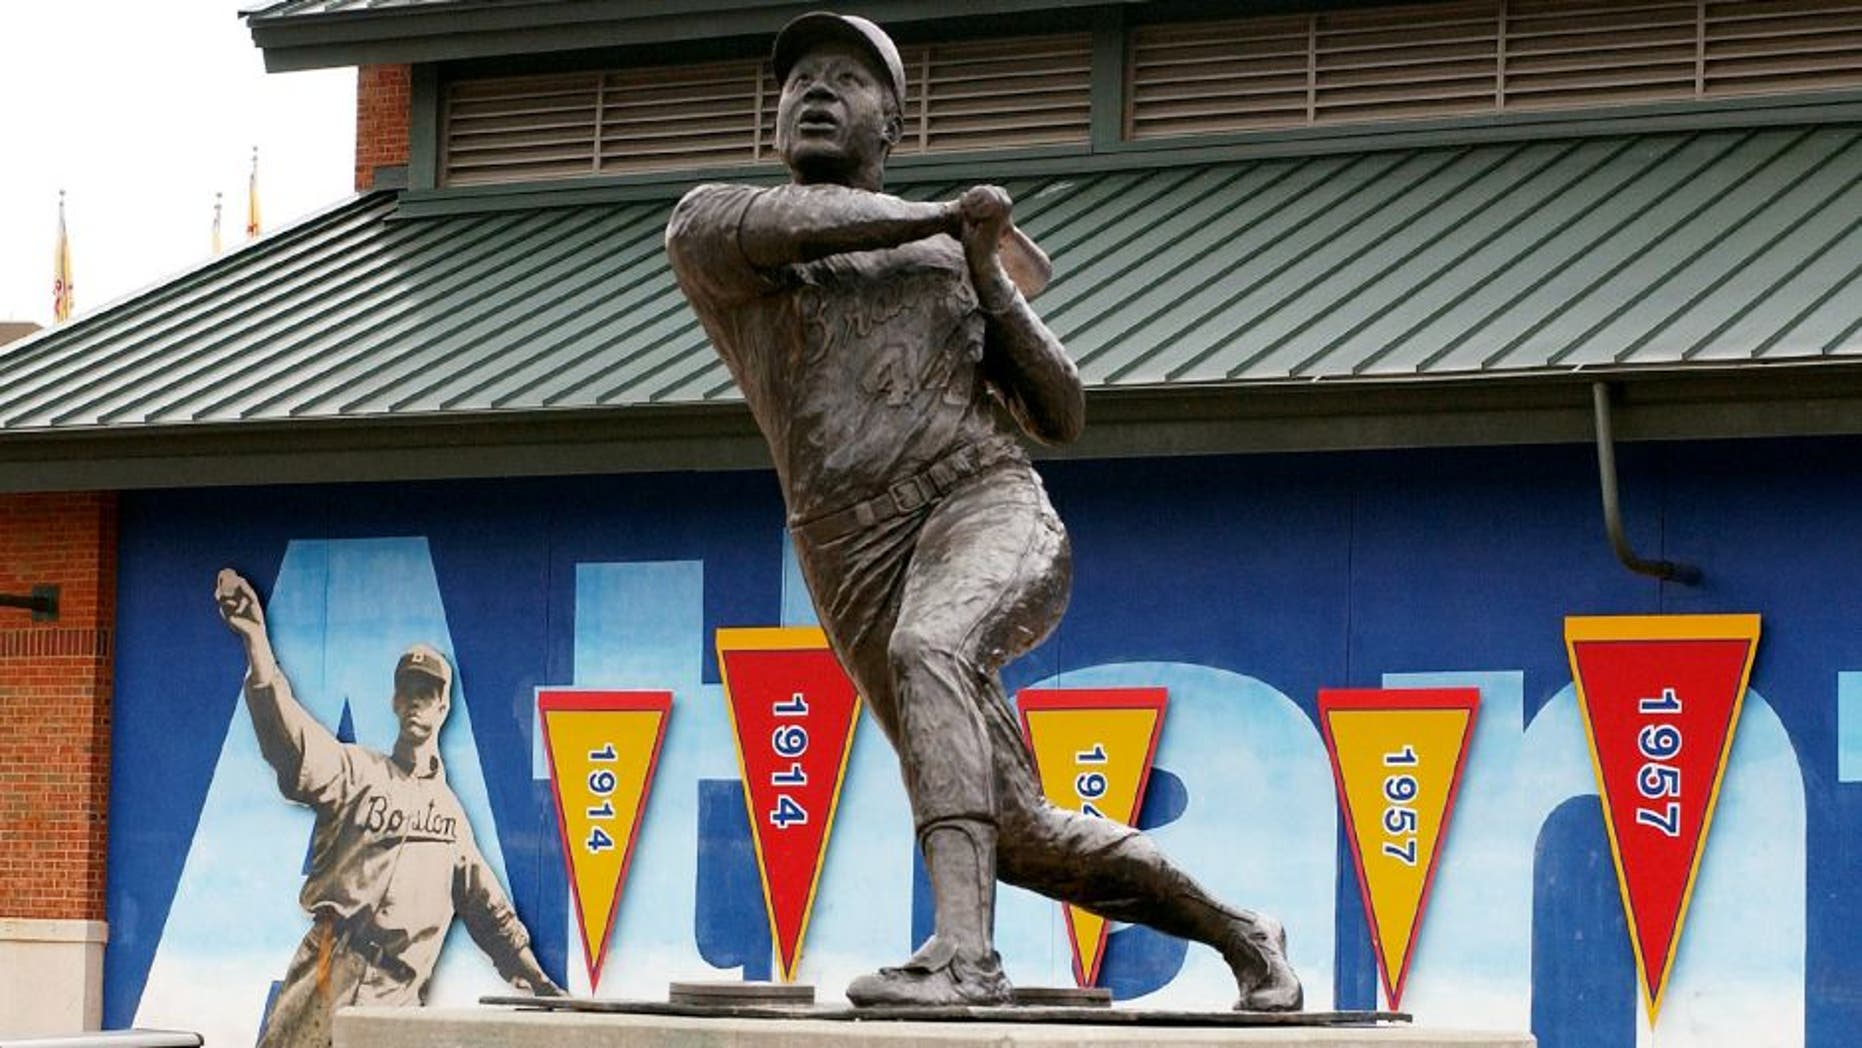 ATLANTA - JULY 26: At Turner Field, a statue at honors #44 Hank Aaron and his career with the Braves (1954-1974), on July 26, 2004 in Atlanta, Georgia. (Photo by Scott Cunningham/Getty Images)